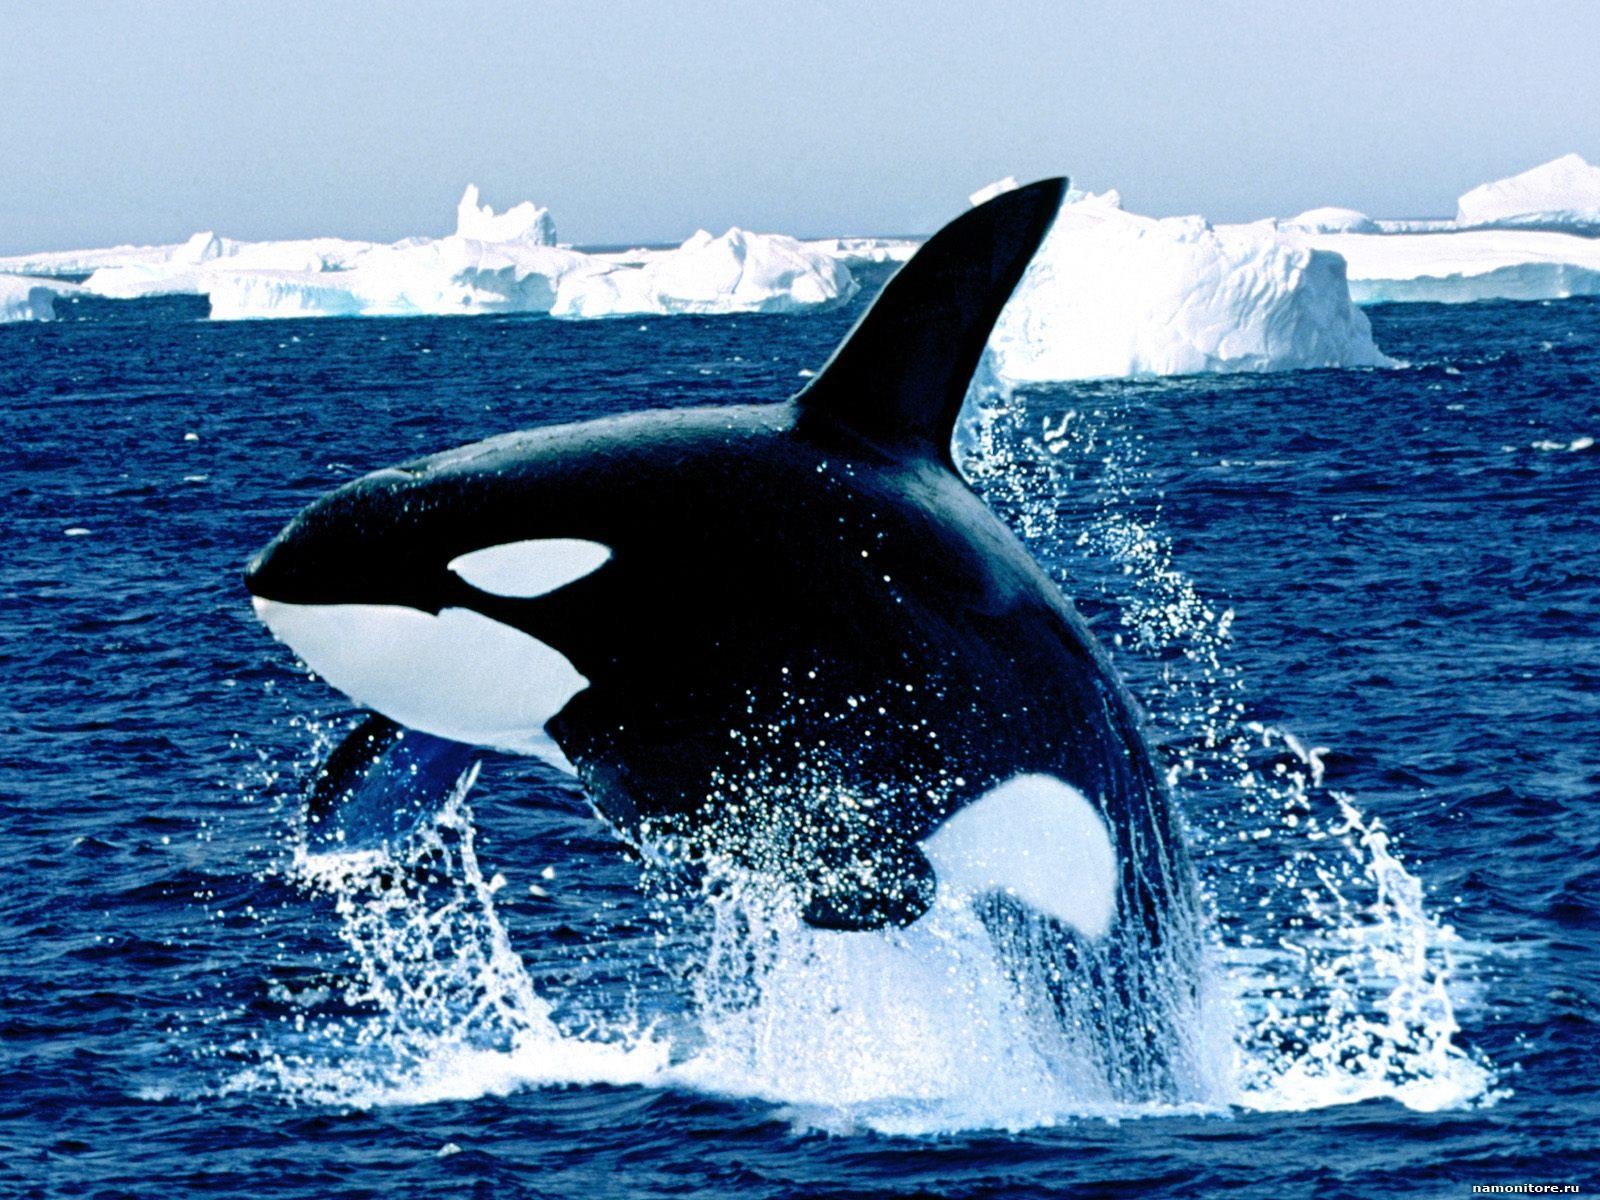 Killer Whale among ice floes dark blue sea whales 1600x1200